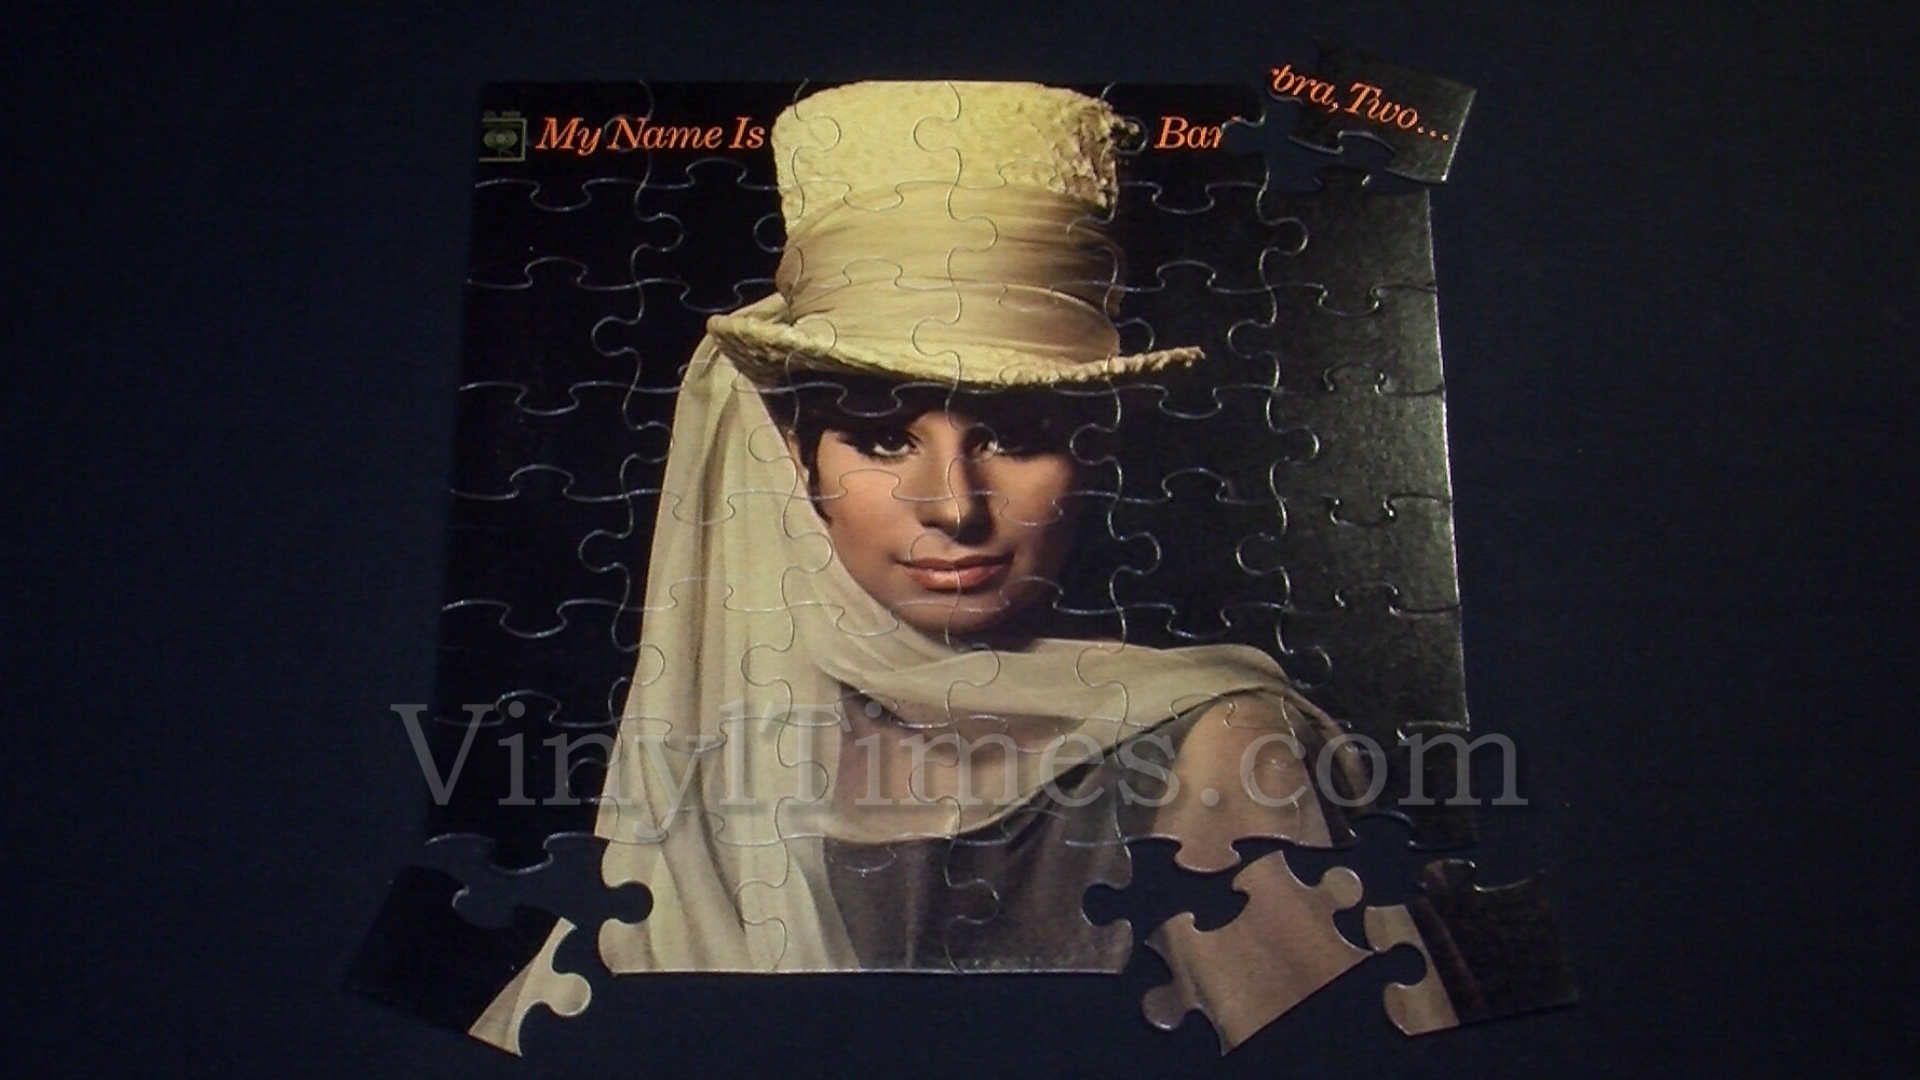 """Barbra Streisand """"My Name Is Barbra, Two"""" Album Cover Jigsaw Puzzle"""